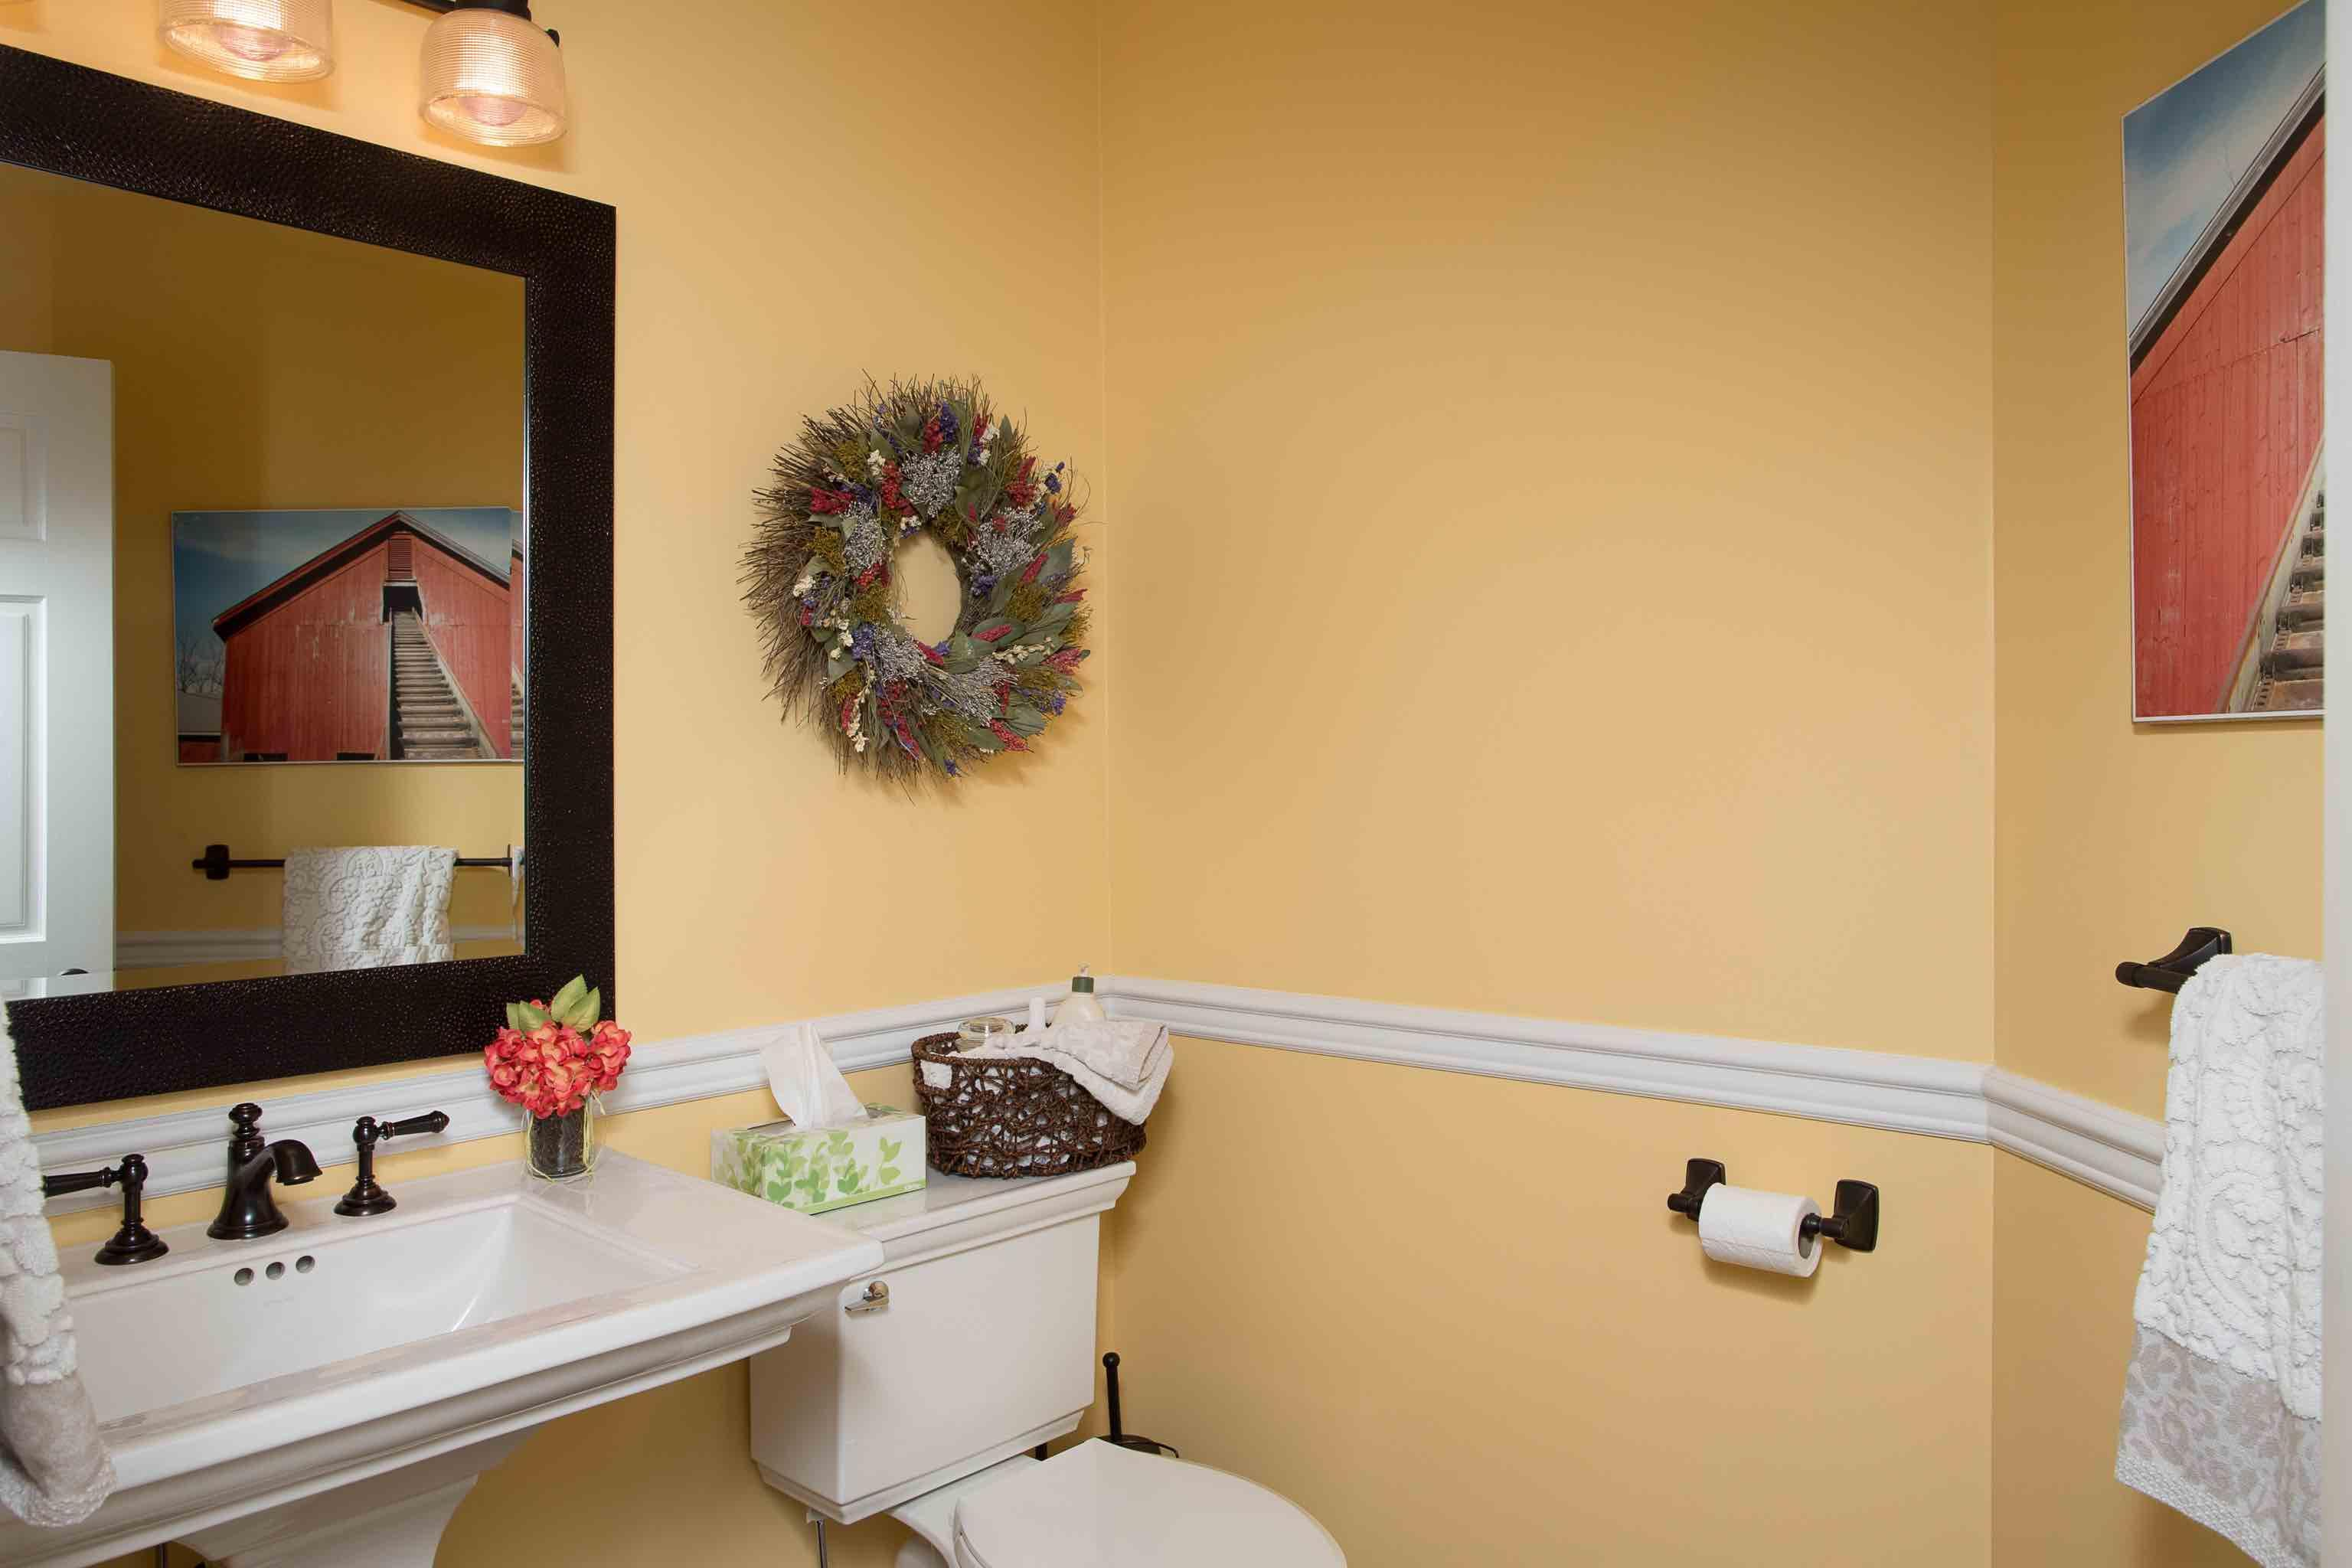 Bathroom featured in the Jackson-The Estates By Sleight Farm at LaGrange in Dutchess County, NY